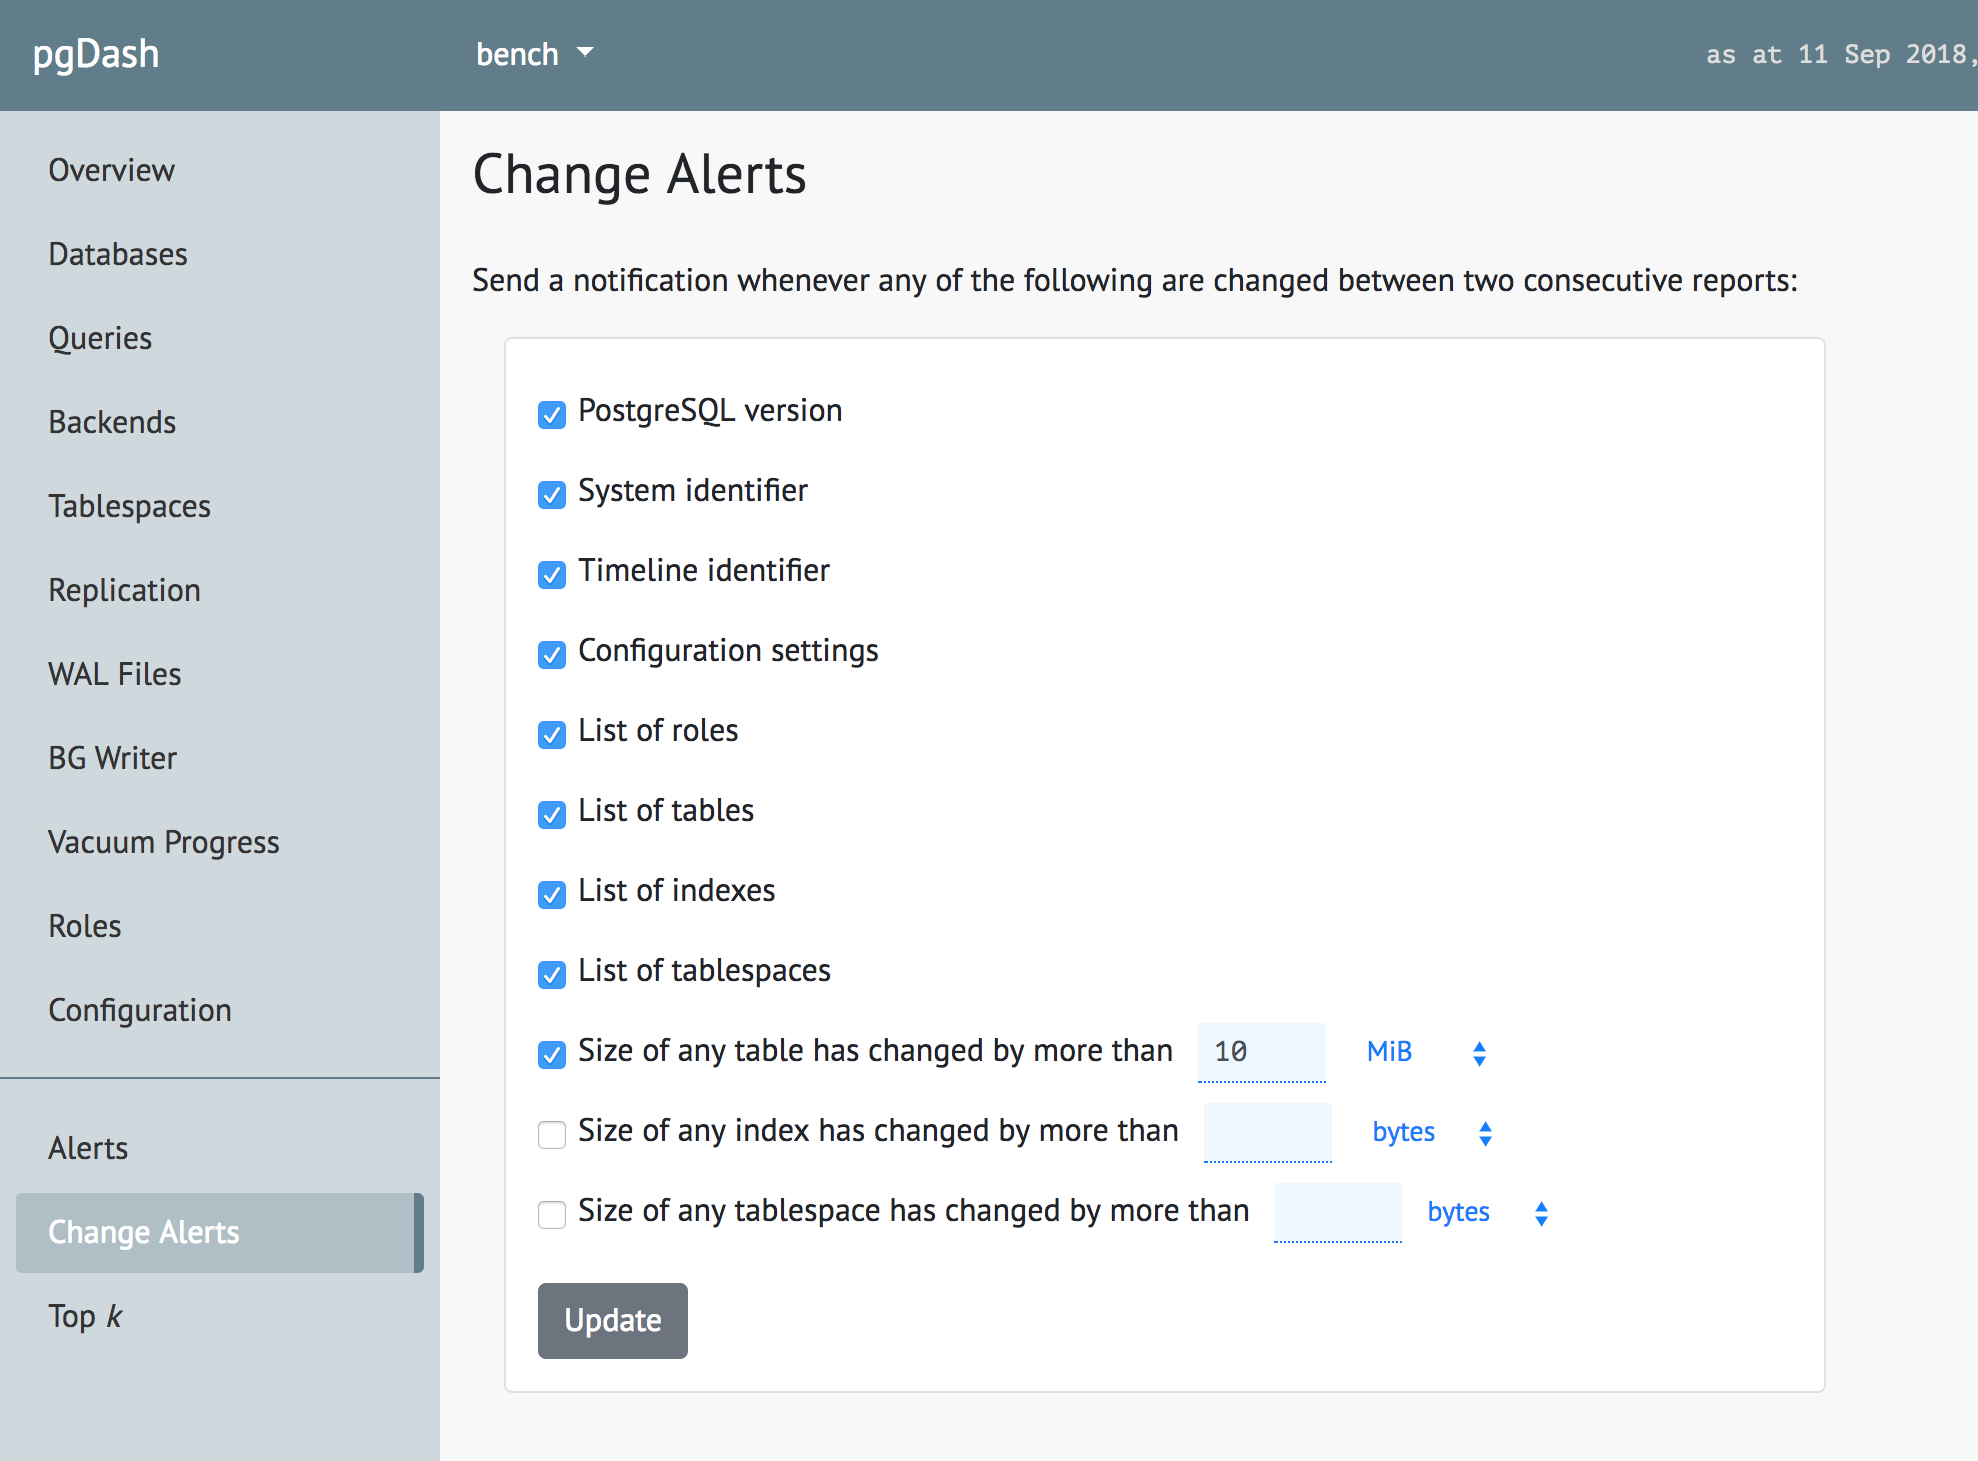 The UI in pgDash for setting change alerts